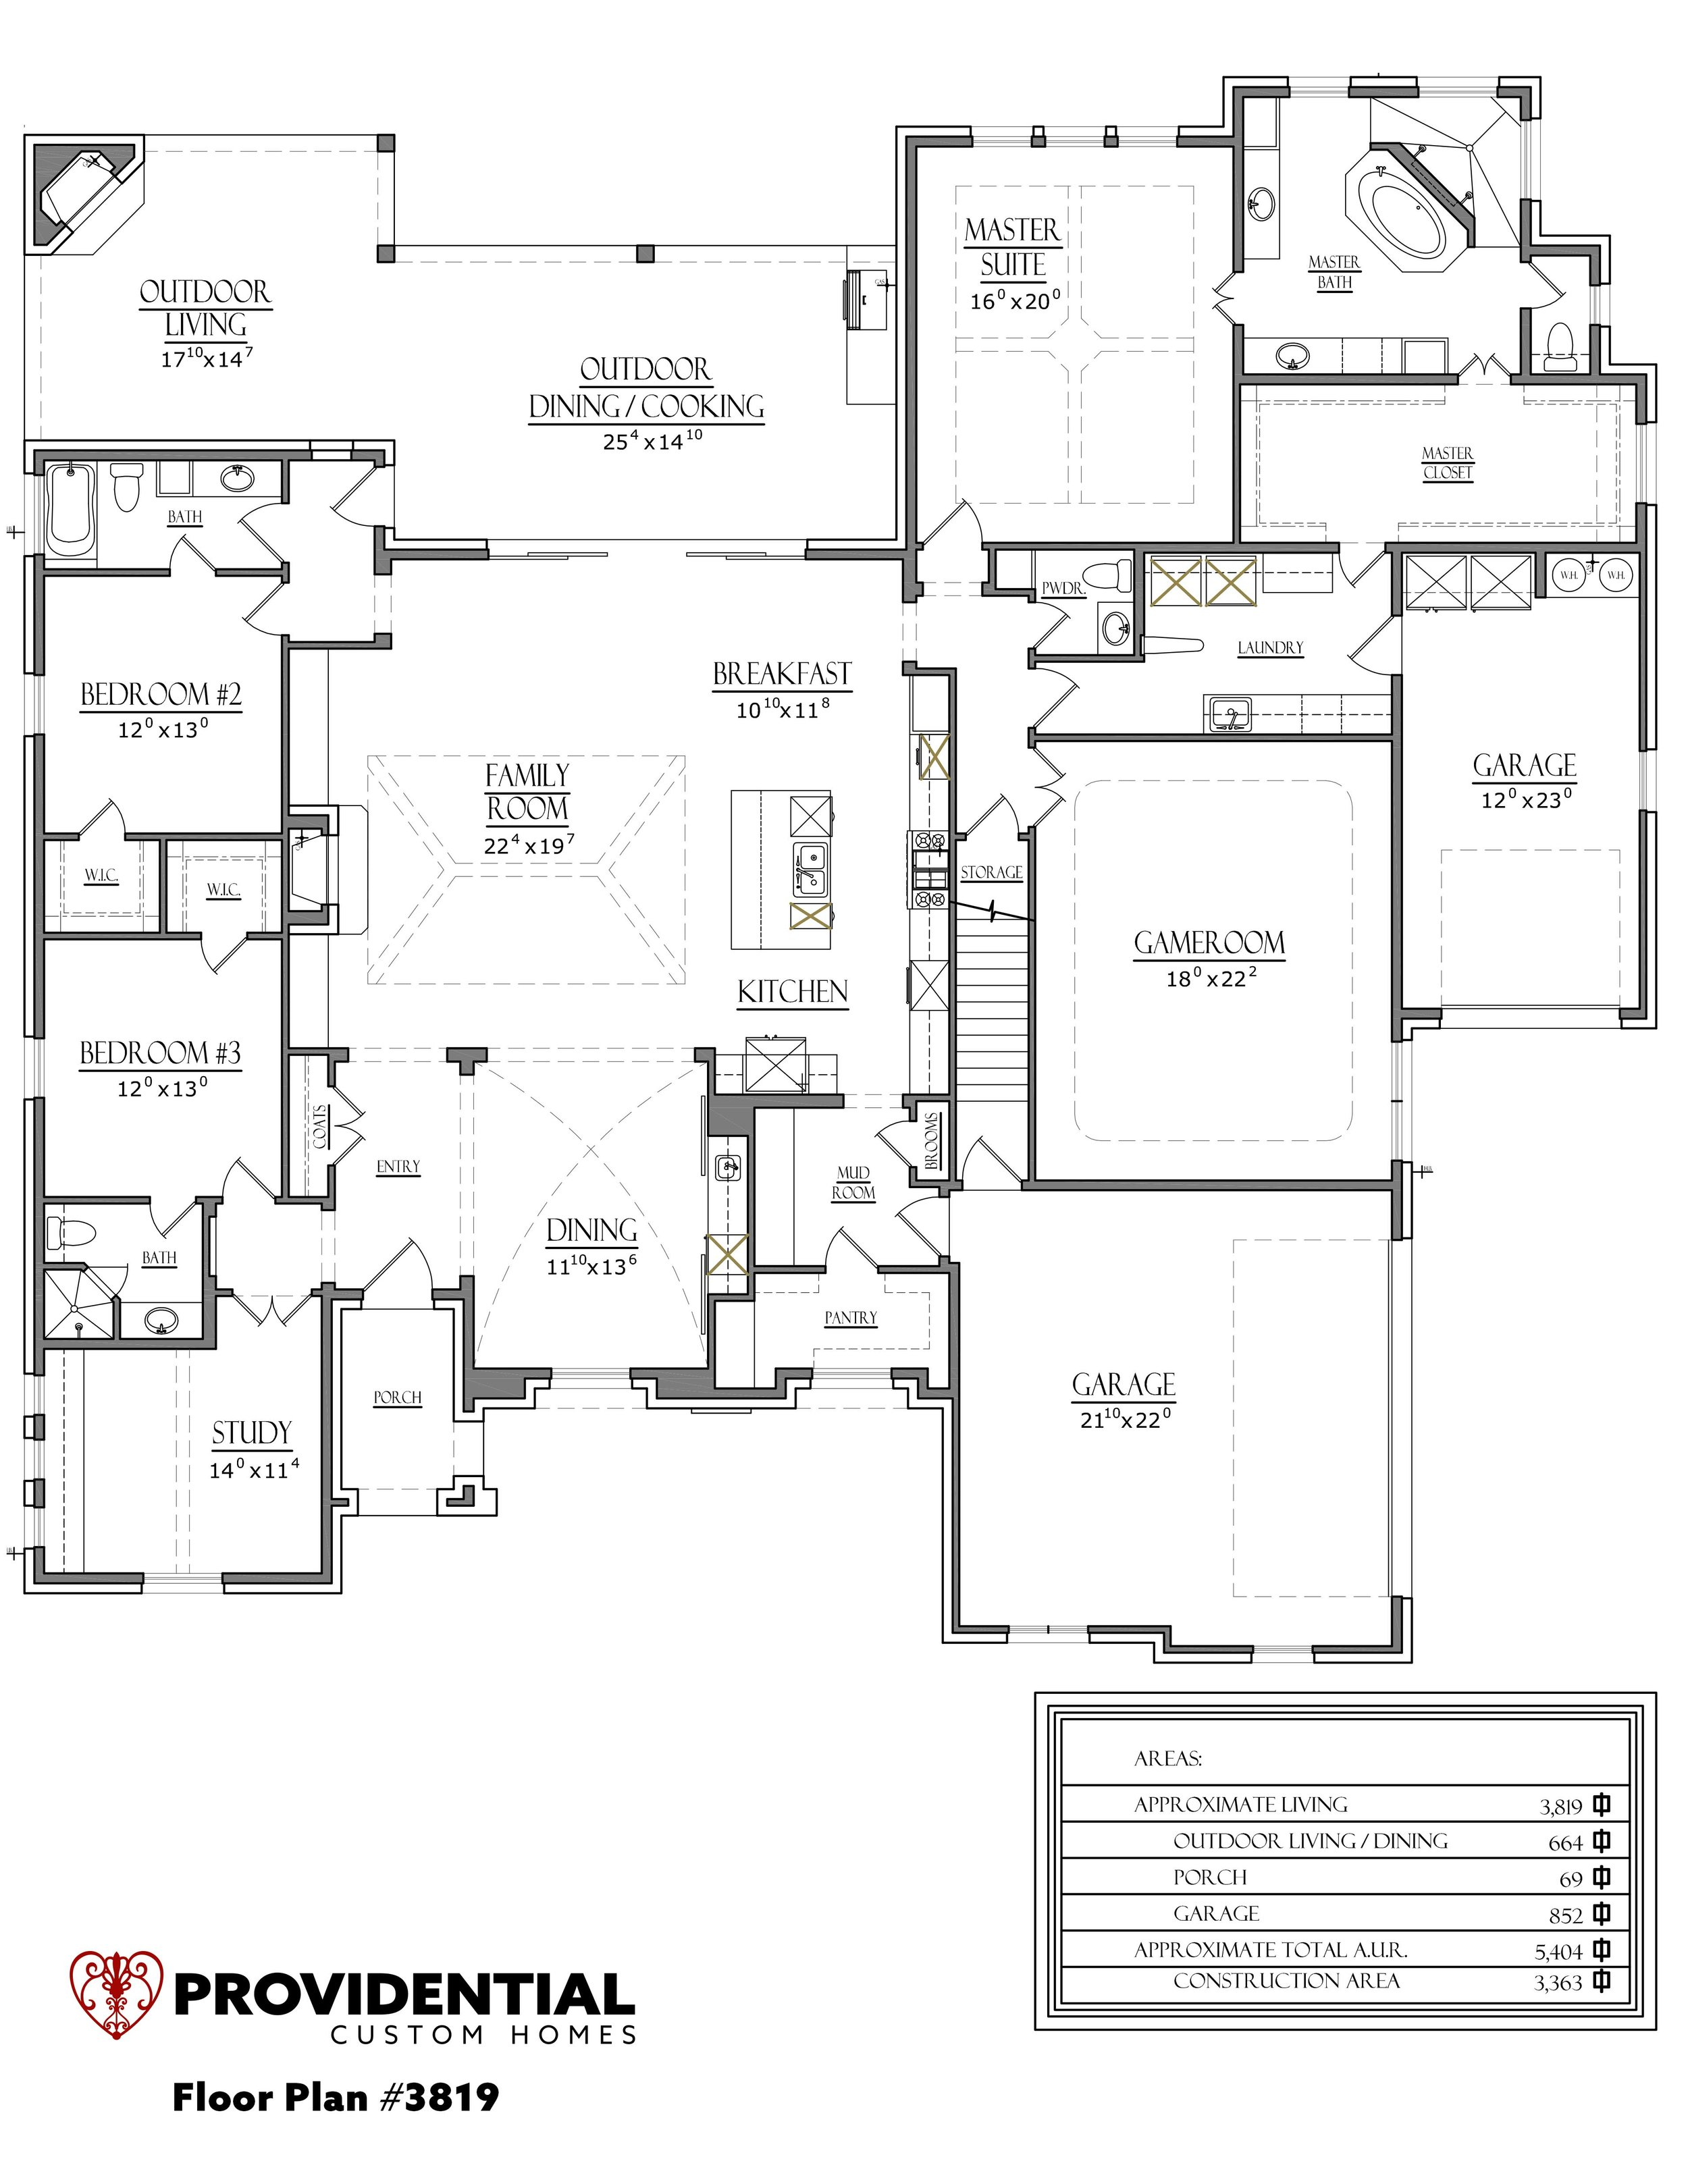 The FLOOR PLAN #3819.jpg